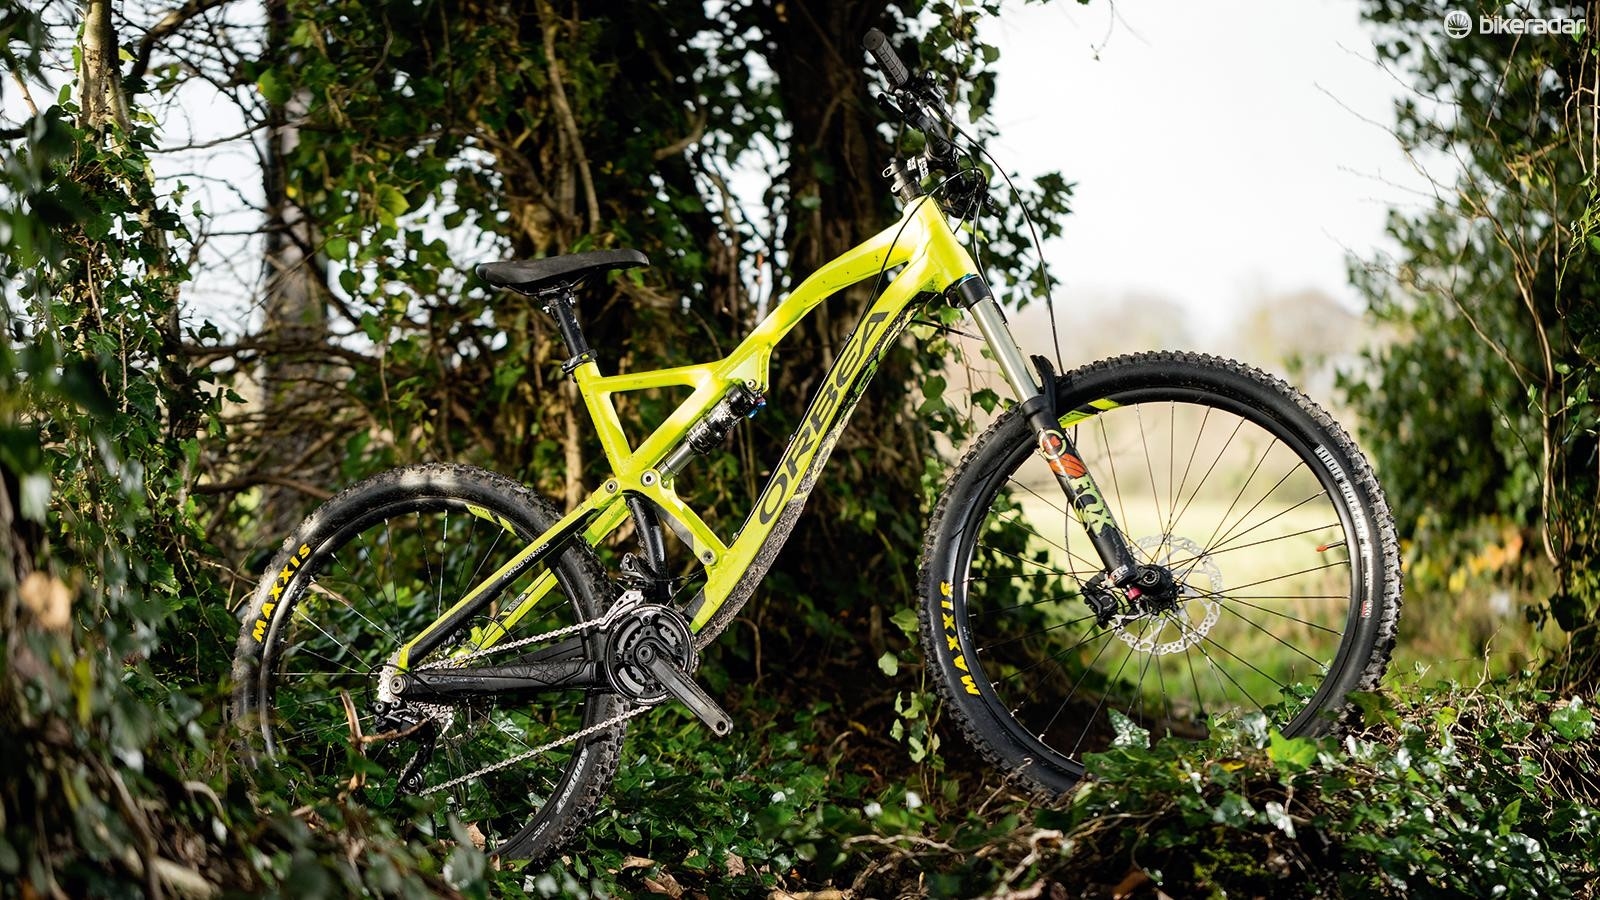 The Orbea Rallon X30 is for the most part a brilliantly on-point –and high-value –enduro machine